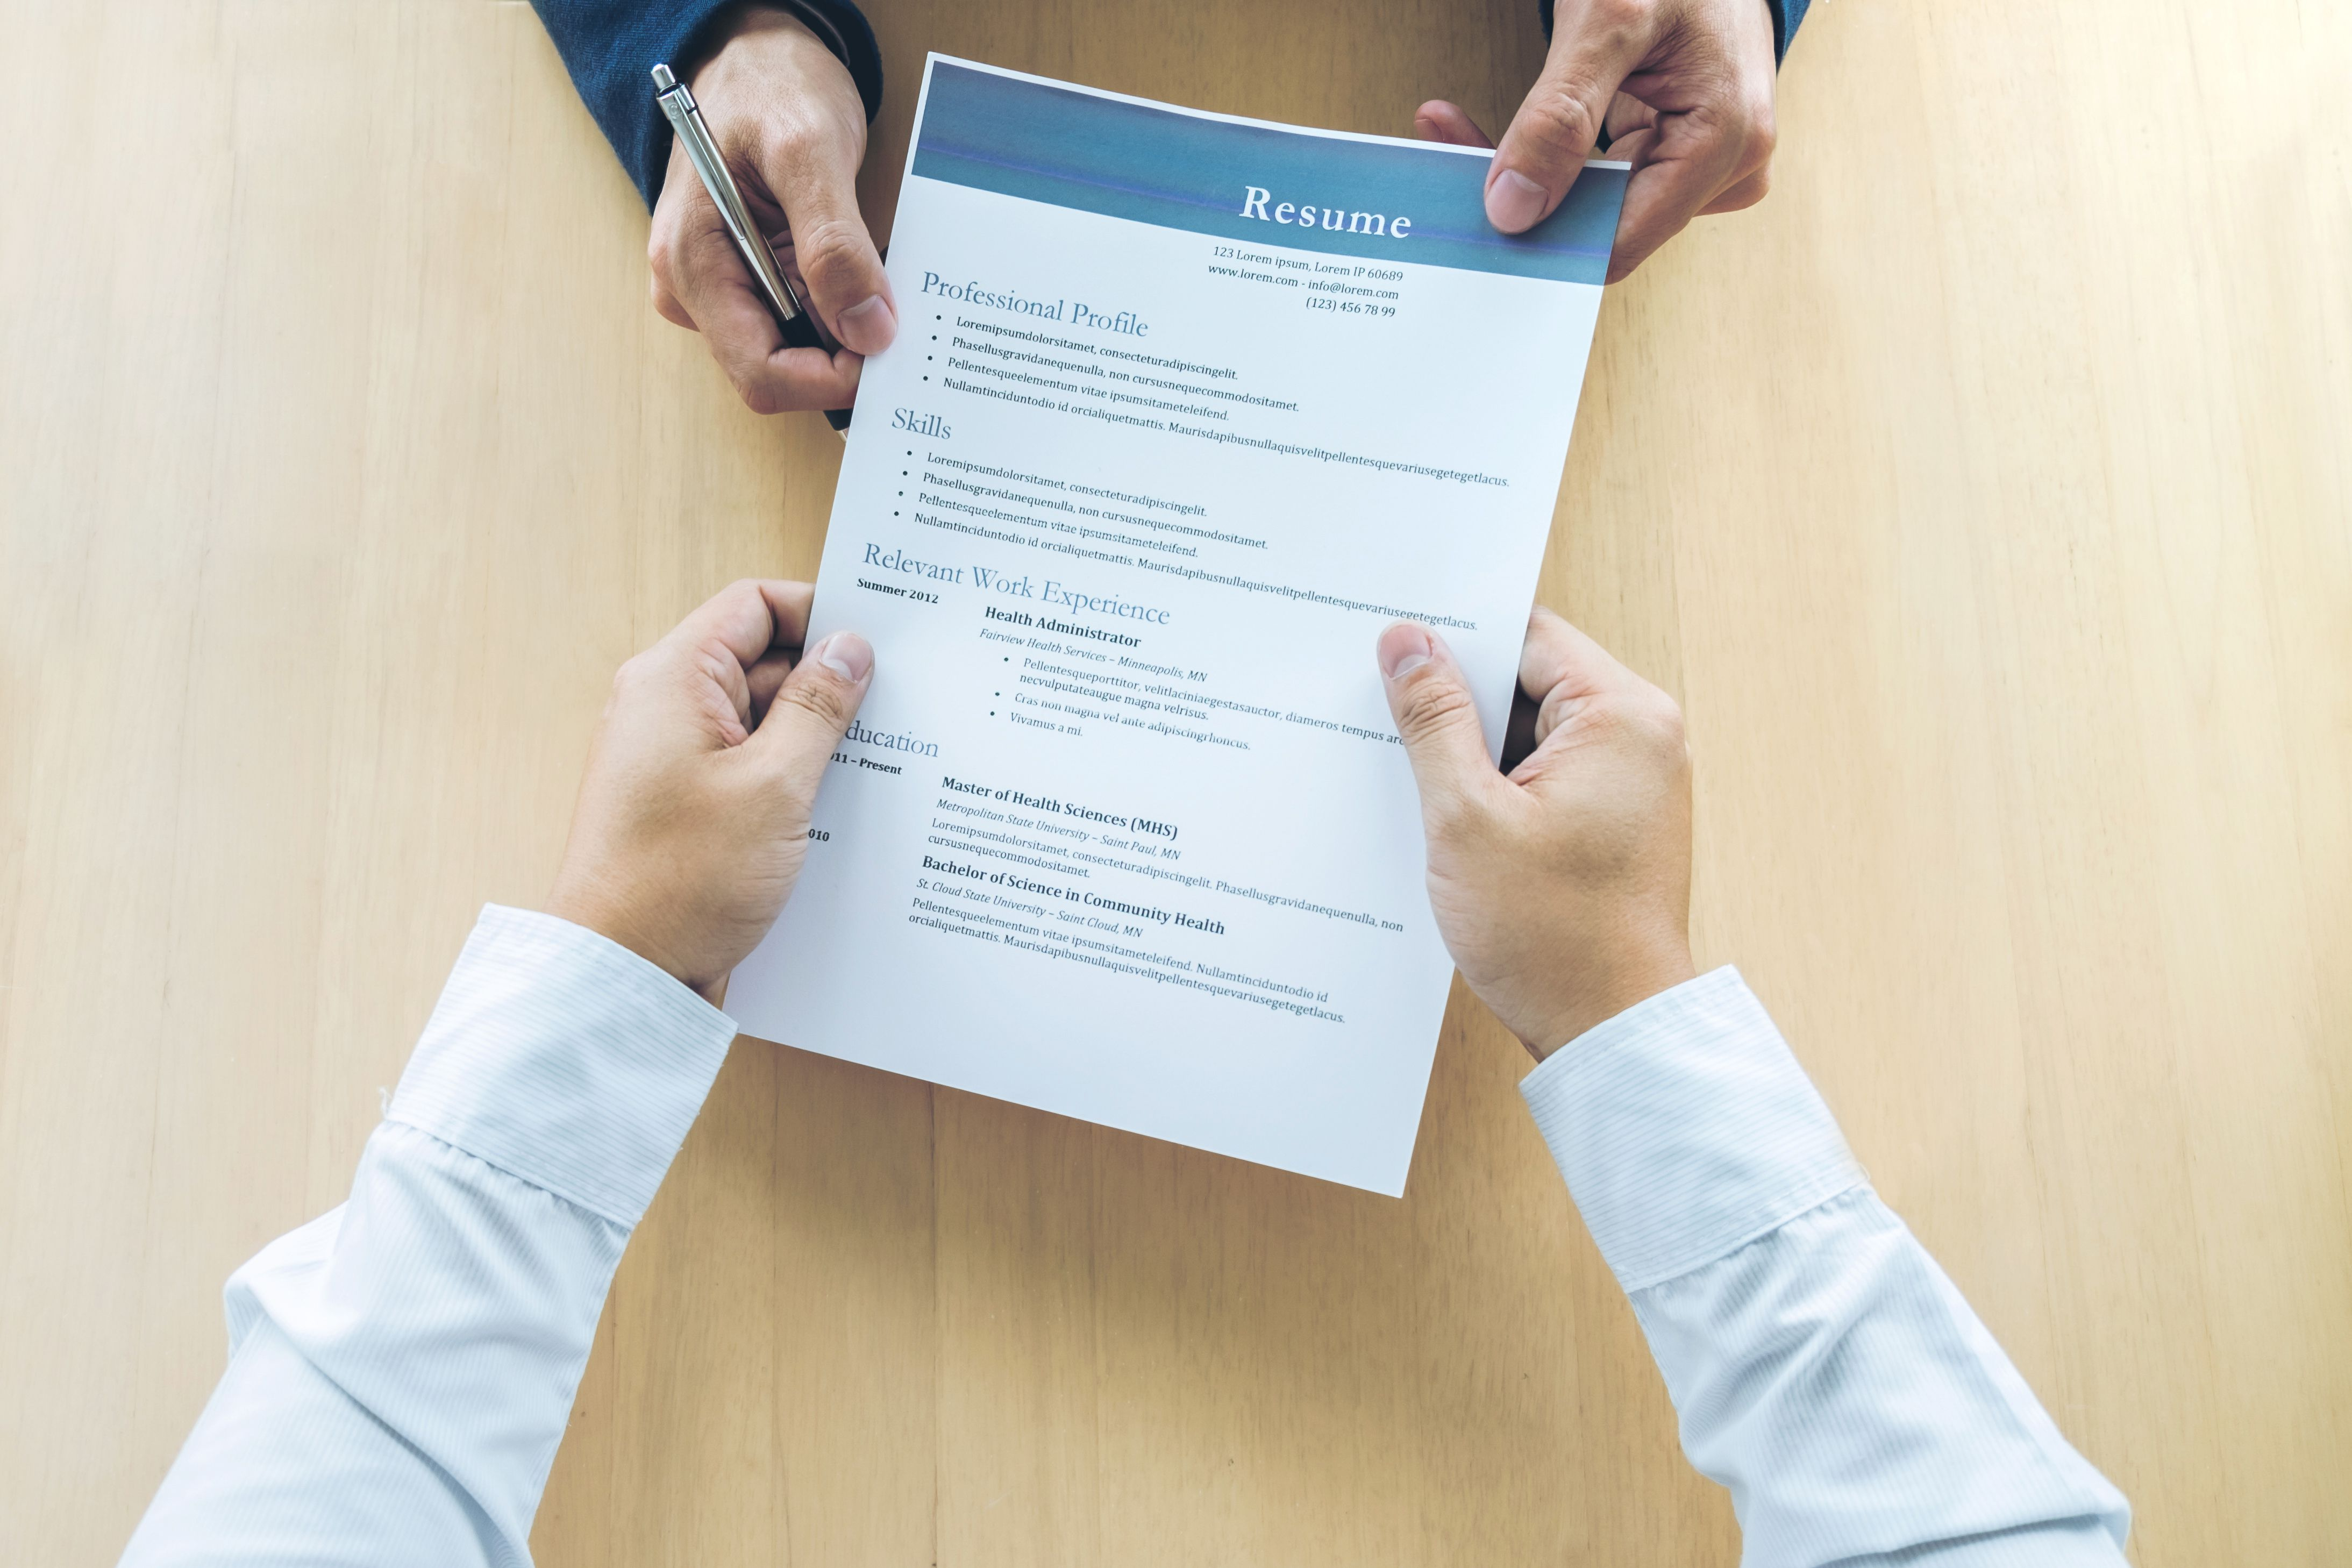 writing a resume profile Resume tips – 5 resume red flags resume writing laura gonzalez prospective employers may spend as little as six seconds looking at your resume to make an assessment of your abilities and to match those abilities to their job opening.